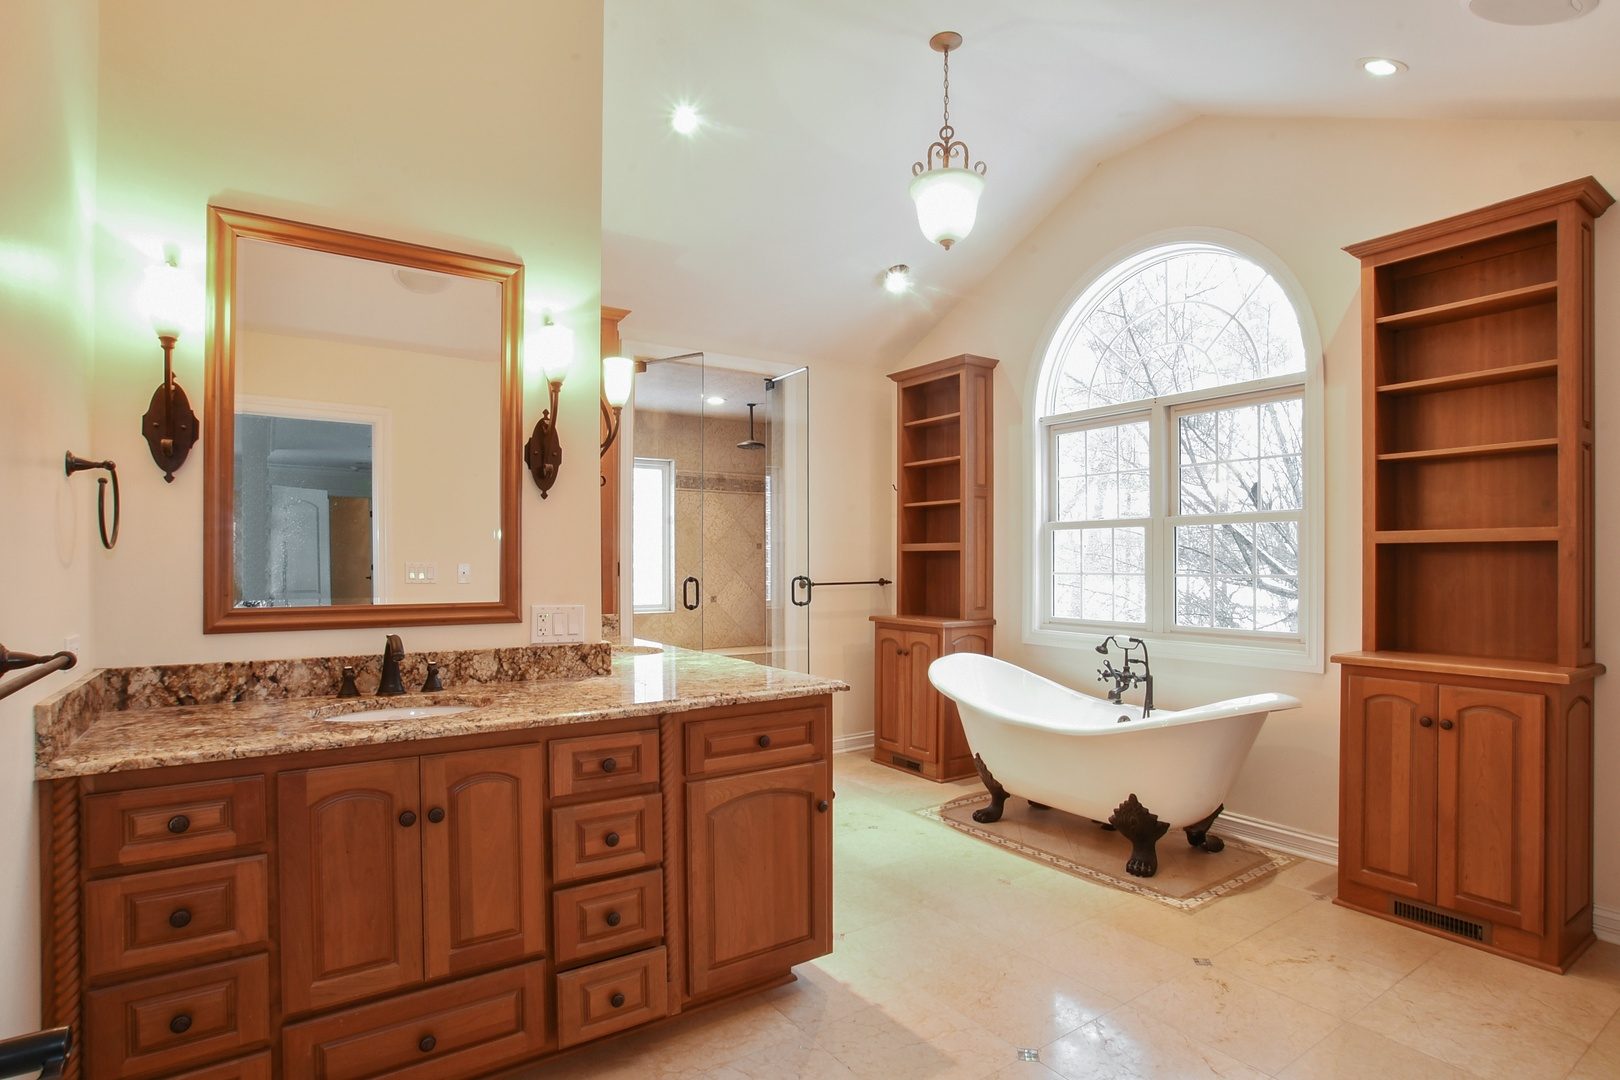 325 WEST DEERPATH ROAD, LAKE FOREST, IL 60045  Photo 9